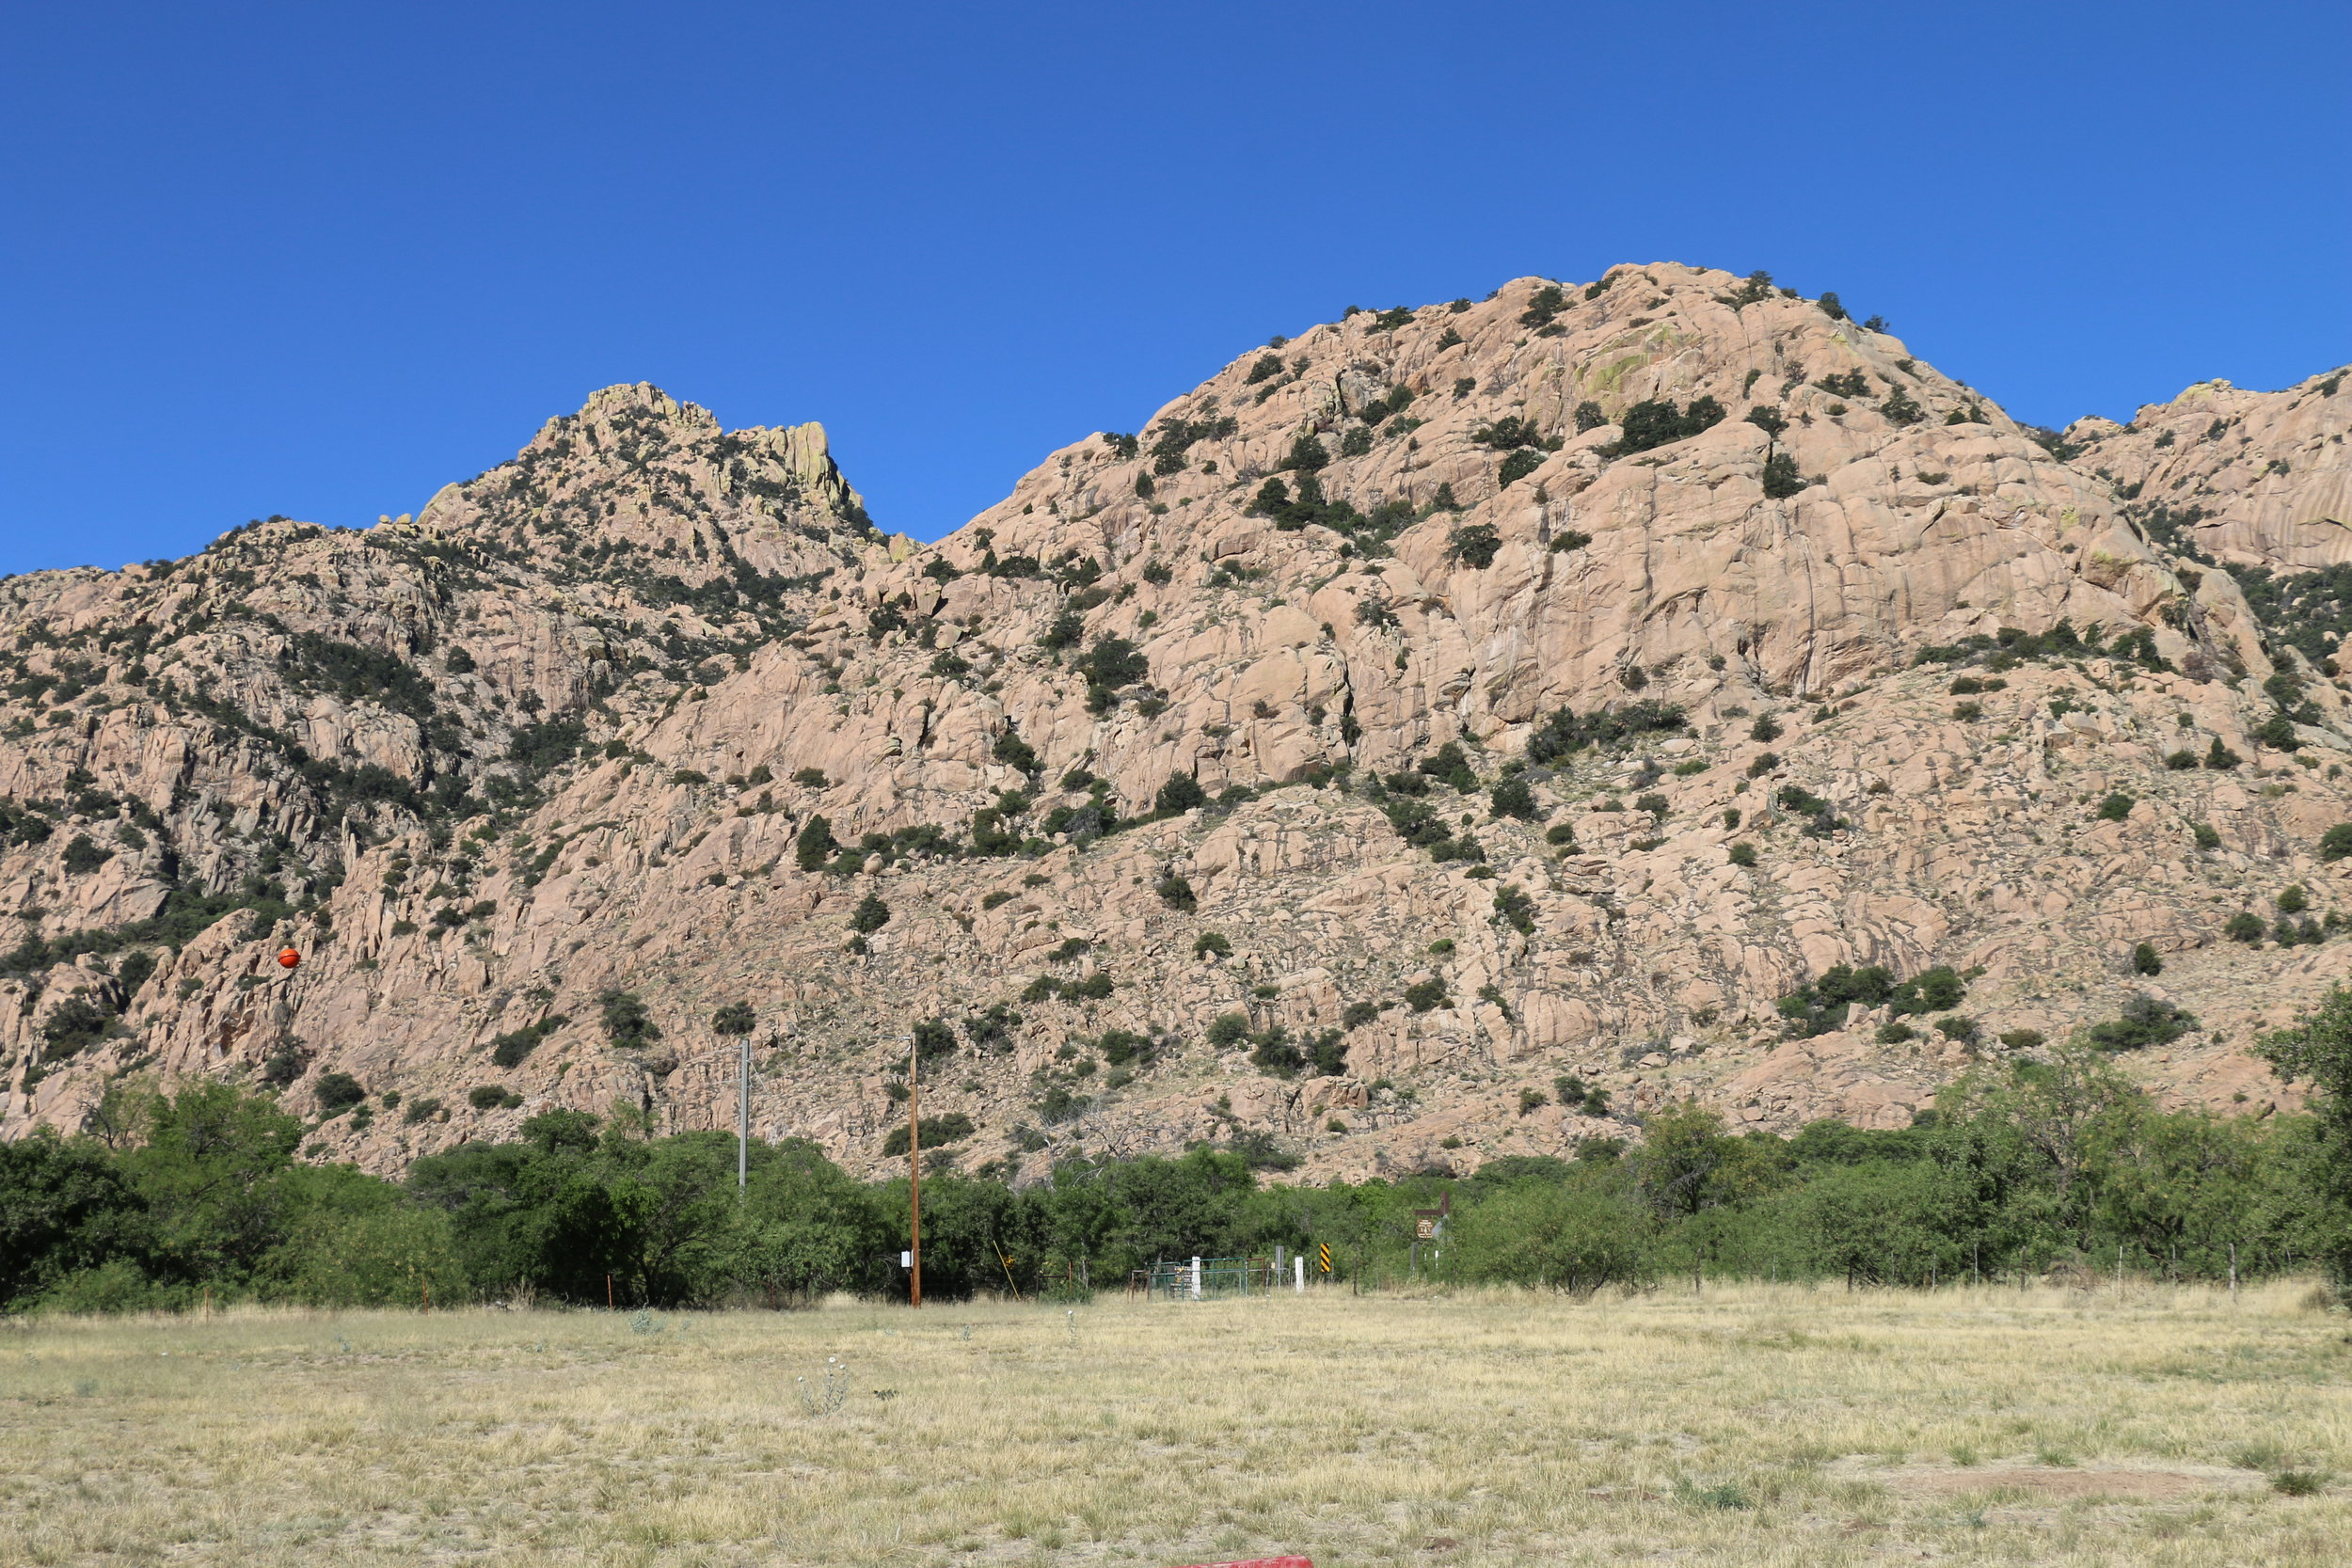 The beauty of Cochise Stronghold as seen from Half Moon Ranch.